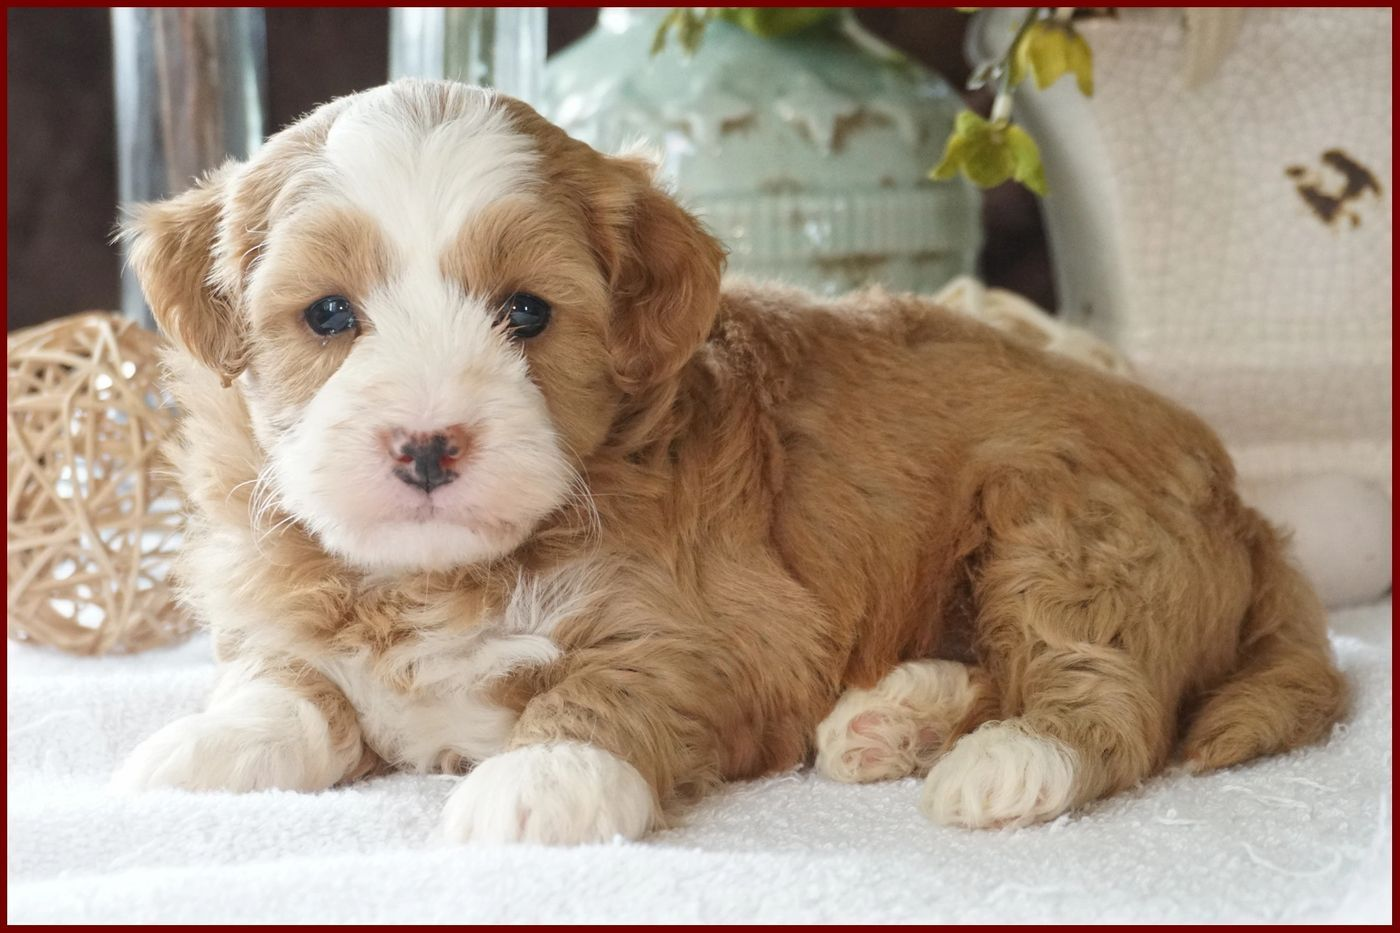 River View Puppies Puppies for Sale, For Sale, Havapoo